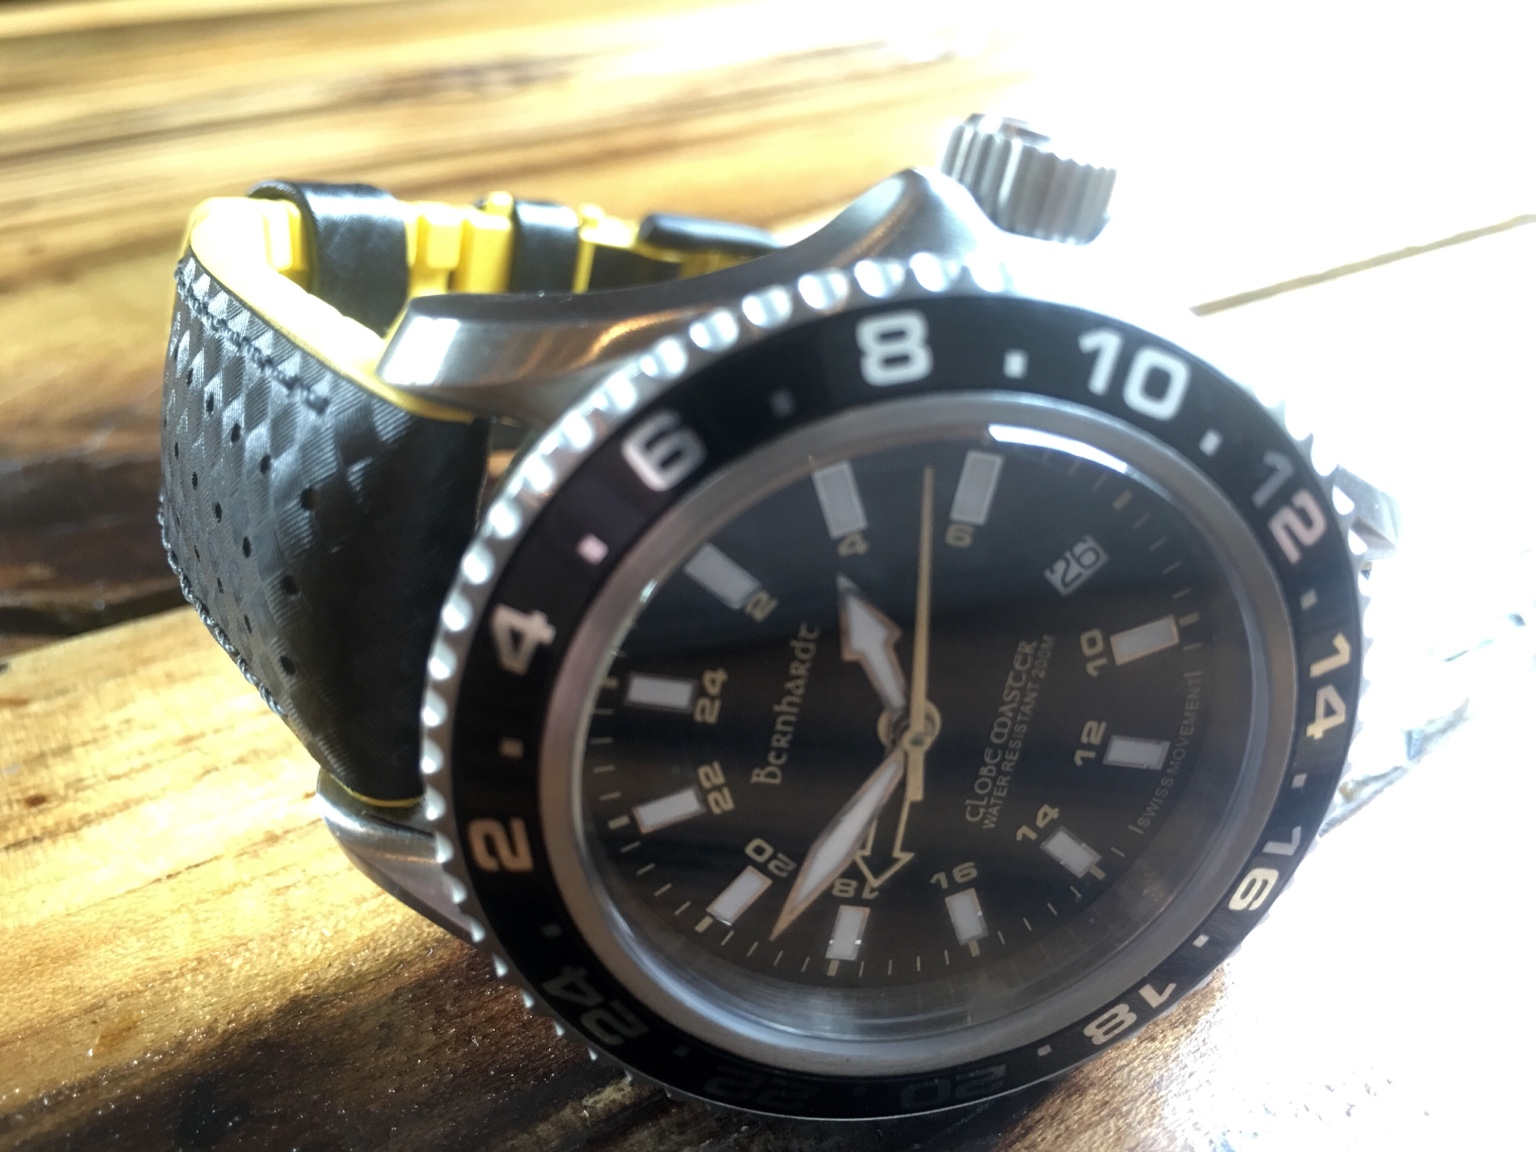 600c75ab37 Calling all Fred-Heads!!!! Let's see your Bernhardt Watch - Page 10